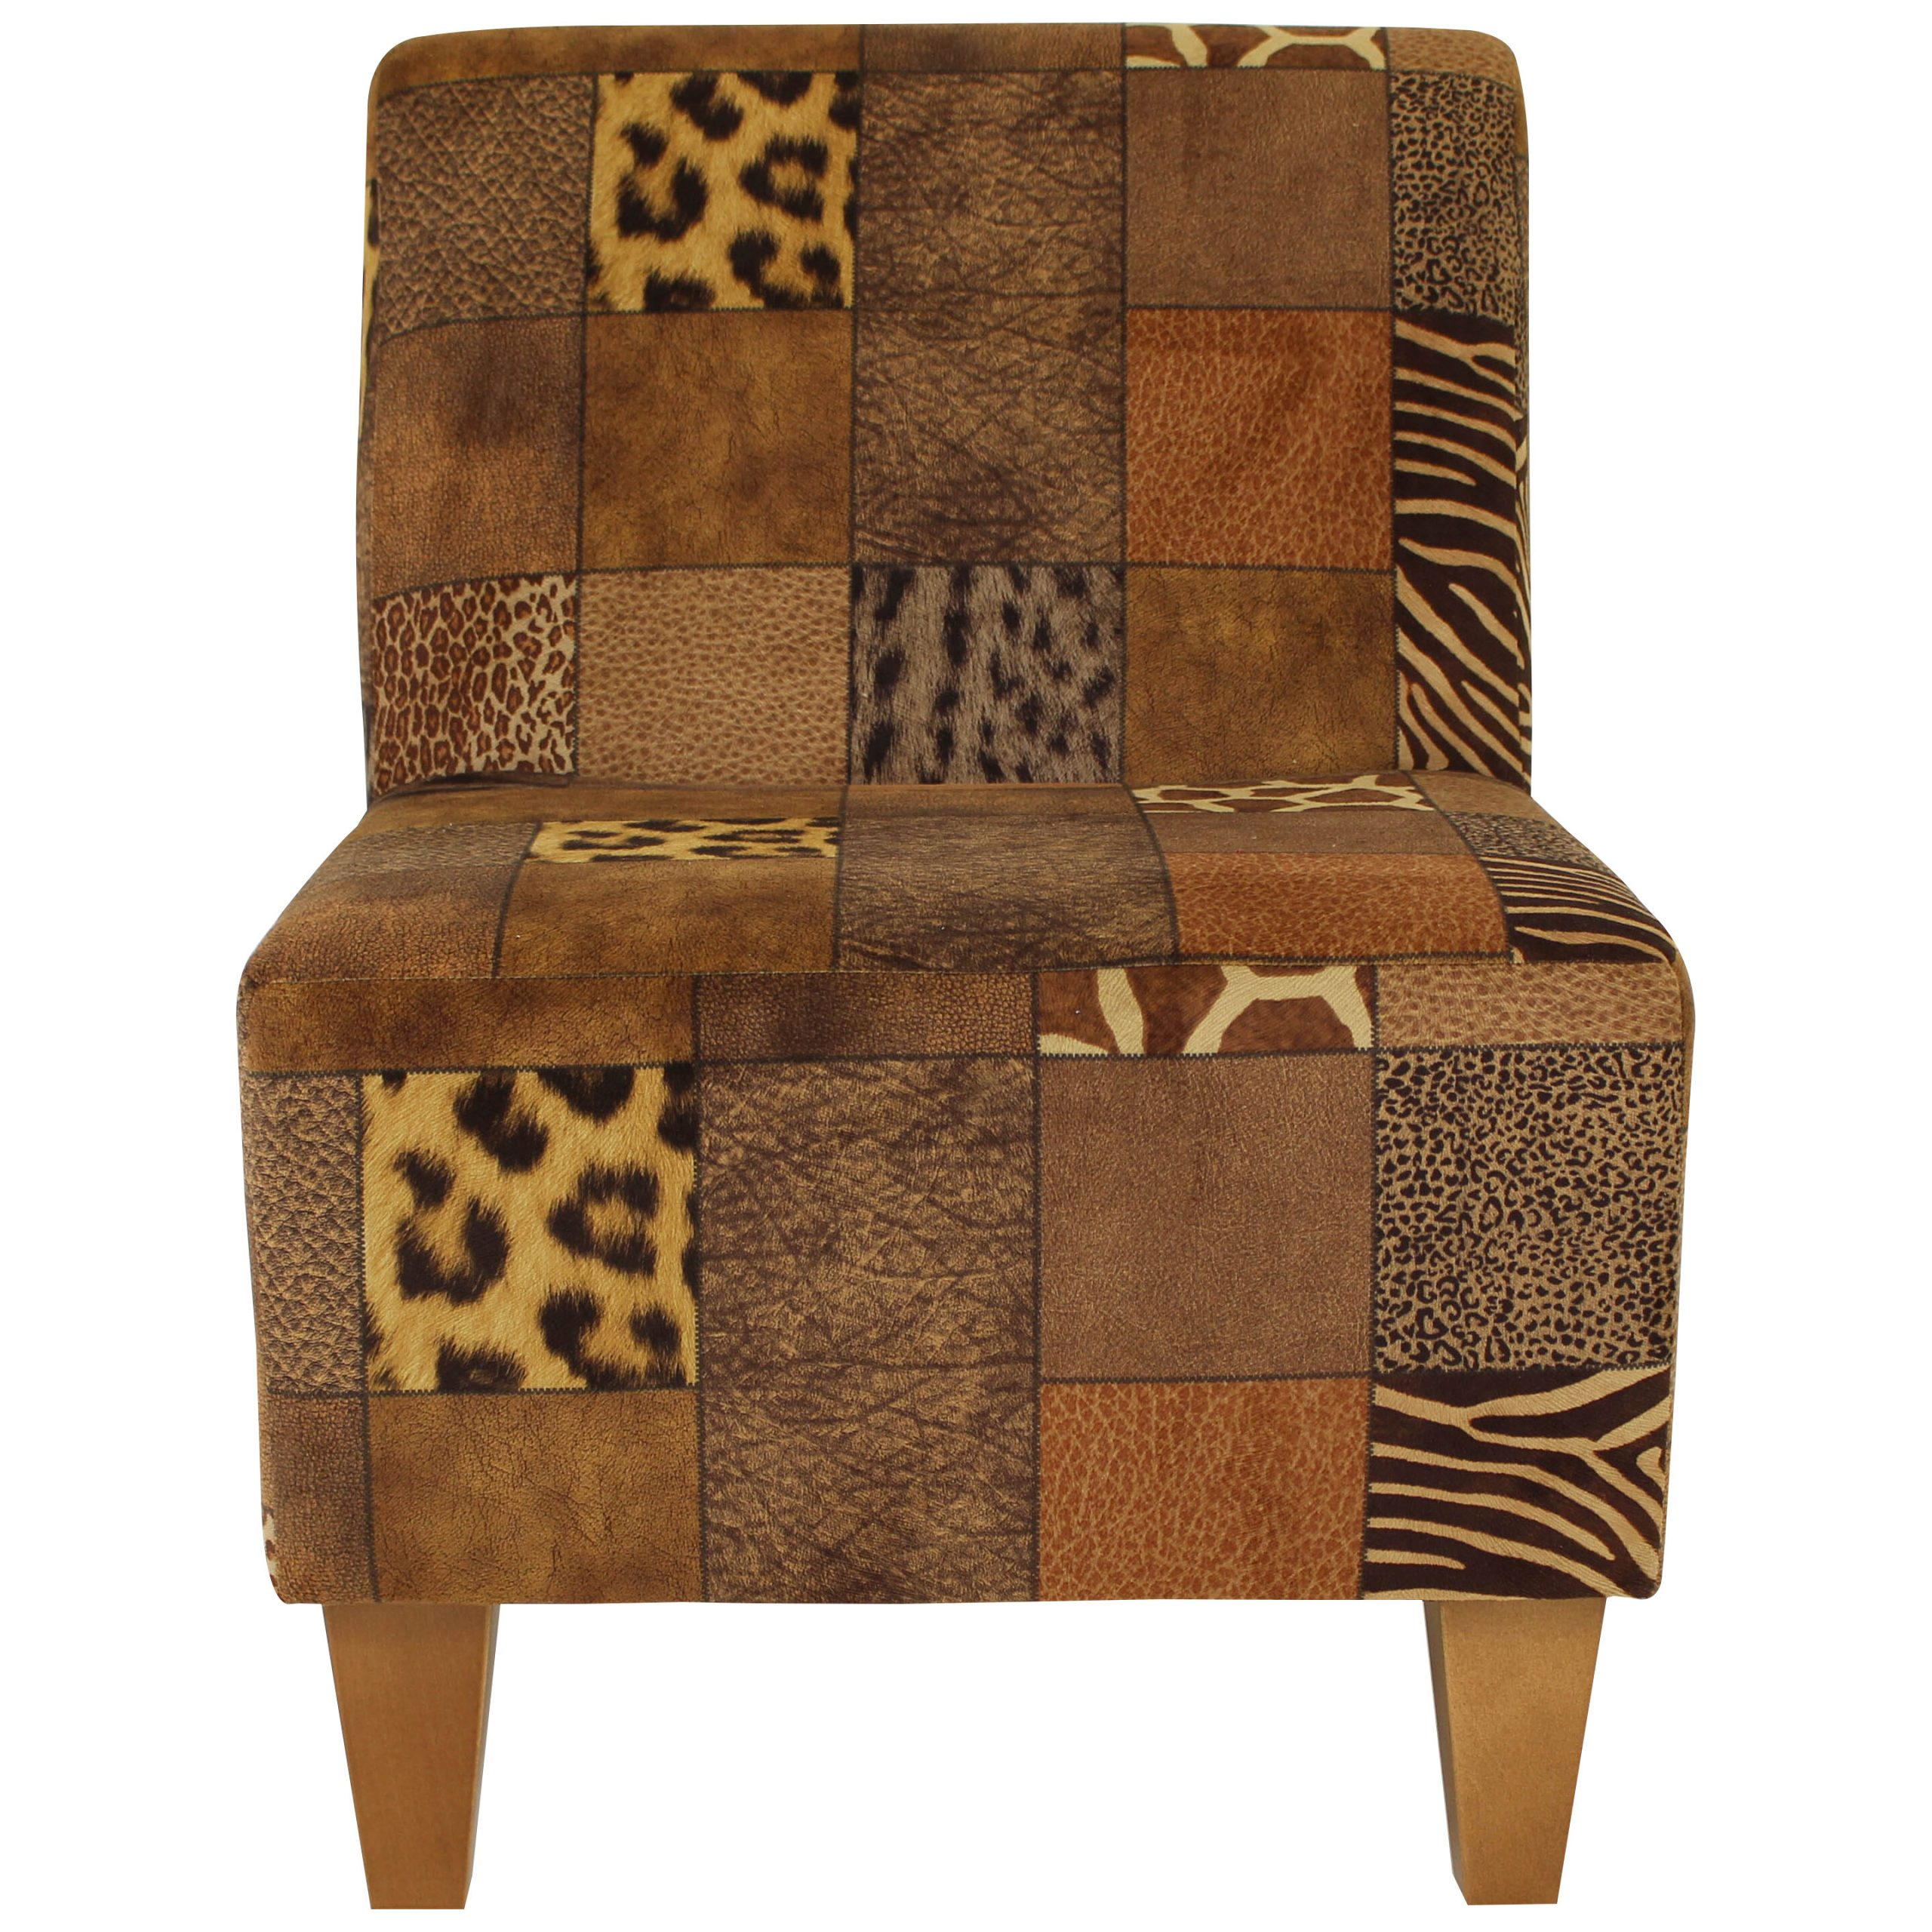 Ronda Slipper Chair With Ronda Barrel Chairs (View 6 of 15)